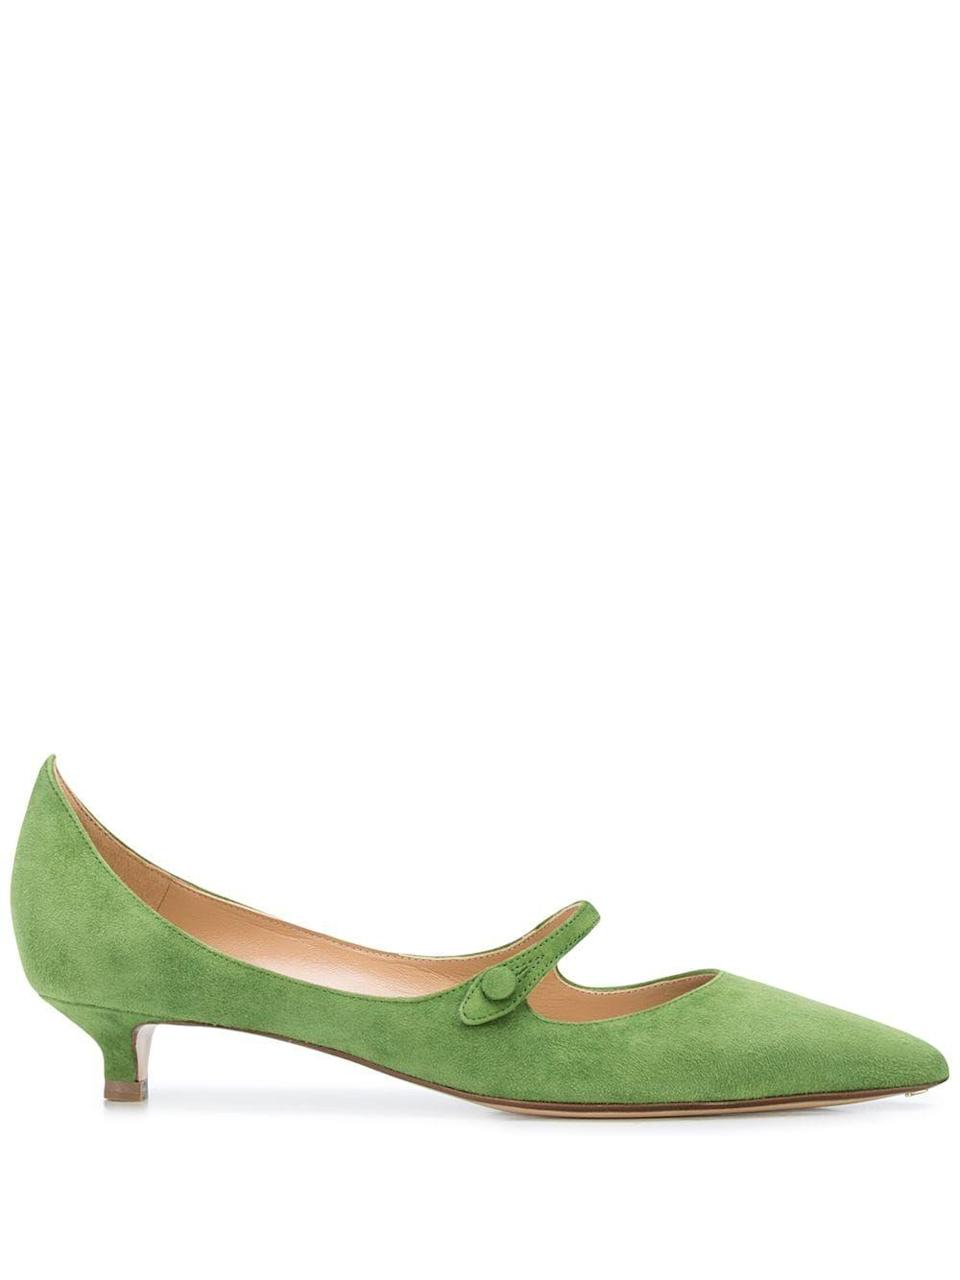 "<p><strong>Francesco Russo</strong></p><p>farfetch.com</p><p><strong>$476.00</strong></p><p><a href=""https://go.redirectingat.com?id=74968X1596630&url=https%3A%2F%2Fwww.farfetch.com%2Fshopping%2Fwomen%2Ffrancesco-russo-pointed-kitten-heel-pumps-item-14833847.aspx&sref=https%3A%2F%2Fwww.harpersbazaar.com%2Ffashion%2Ftrends%2Fg34980752%2F2021-shoe-trends%2F"" rel=""nofollow noopener"" target=""_blank"" data-ylk=""slk:Shop Now"" class=""link rapid-noclick-resp"">Shop Now</a></p><p>If you're looking to take Mary Janes out of their comfort zone, try this pump-meets-MJ style. Perfect for the office or date night, this sweet heel will have your friends green with envy.</p>"